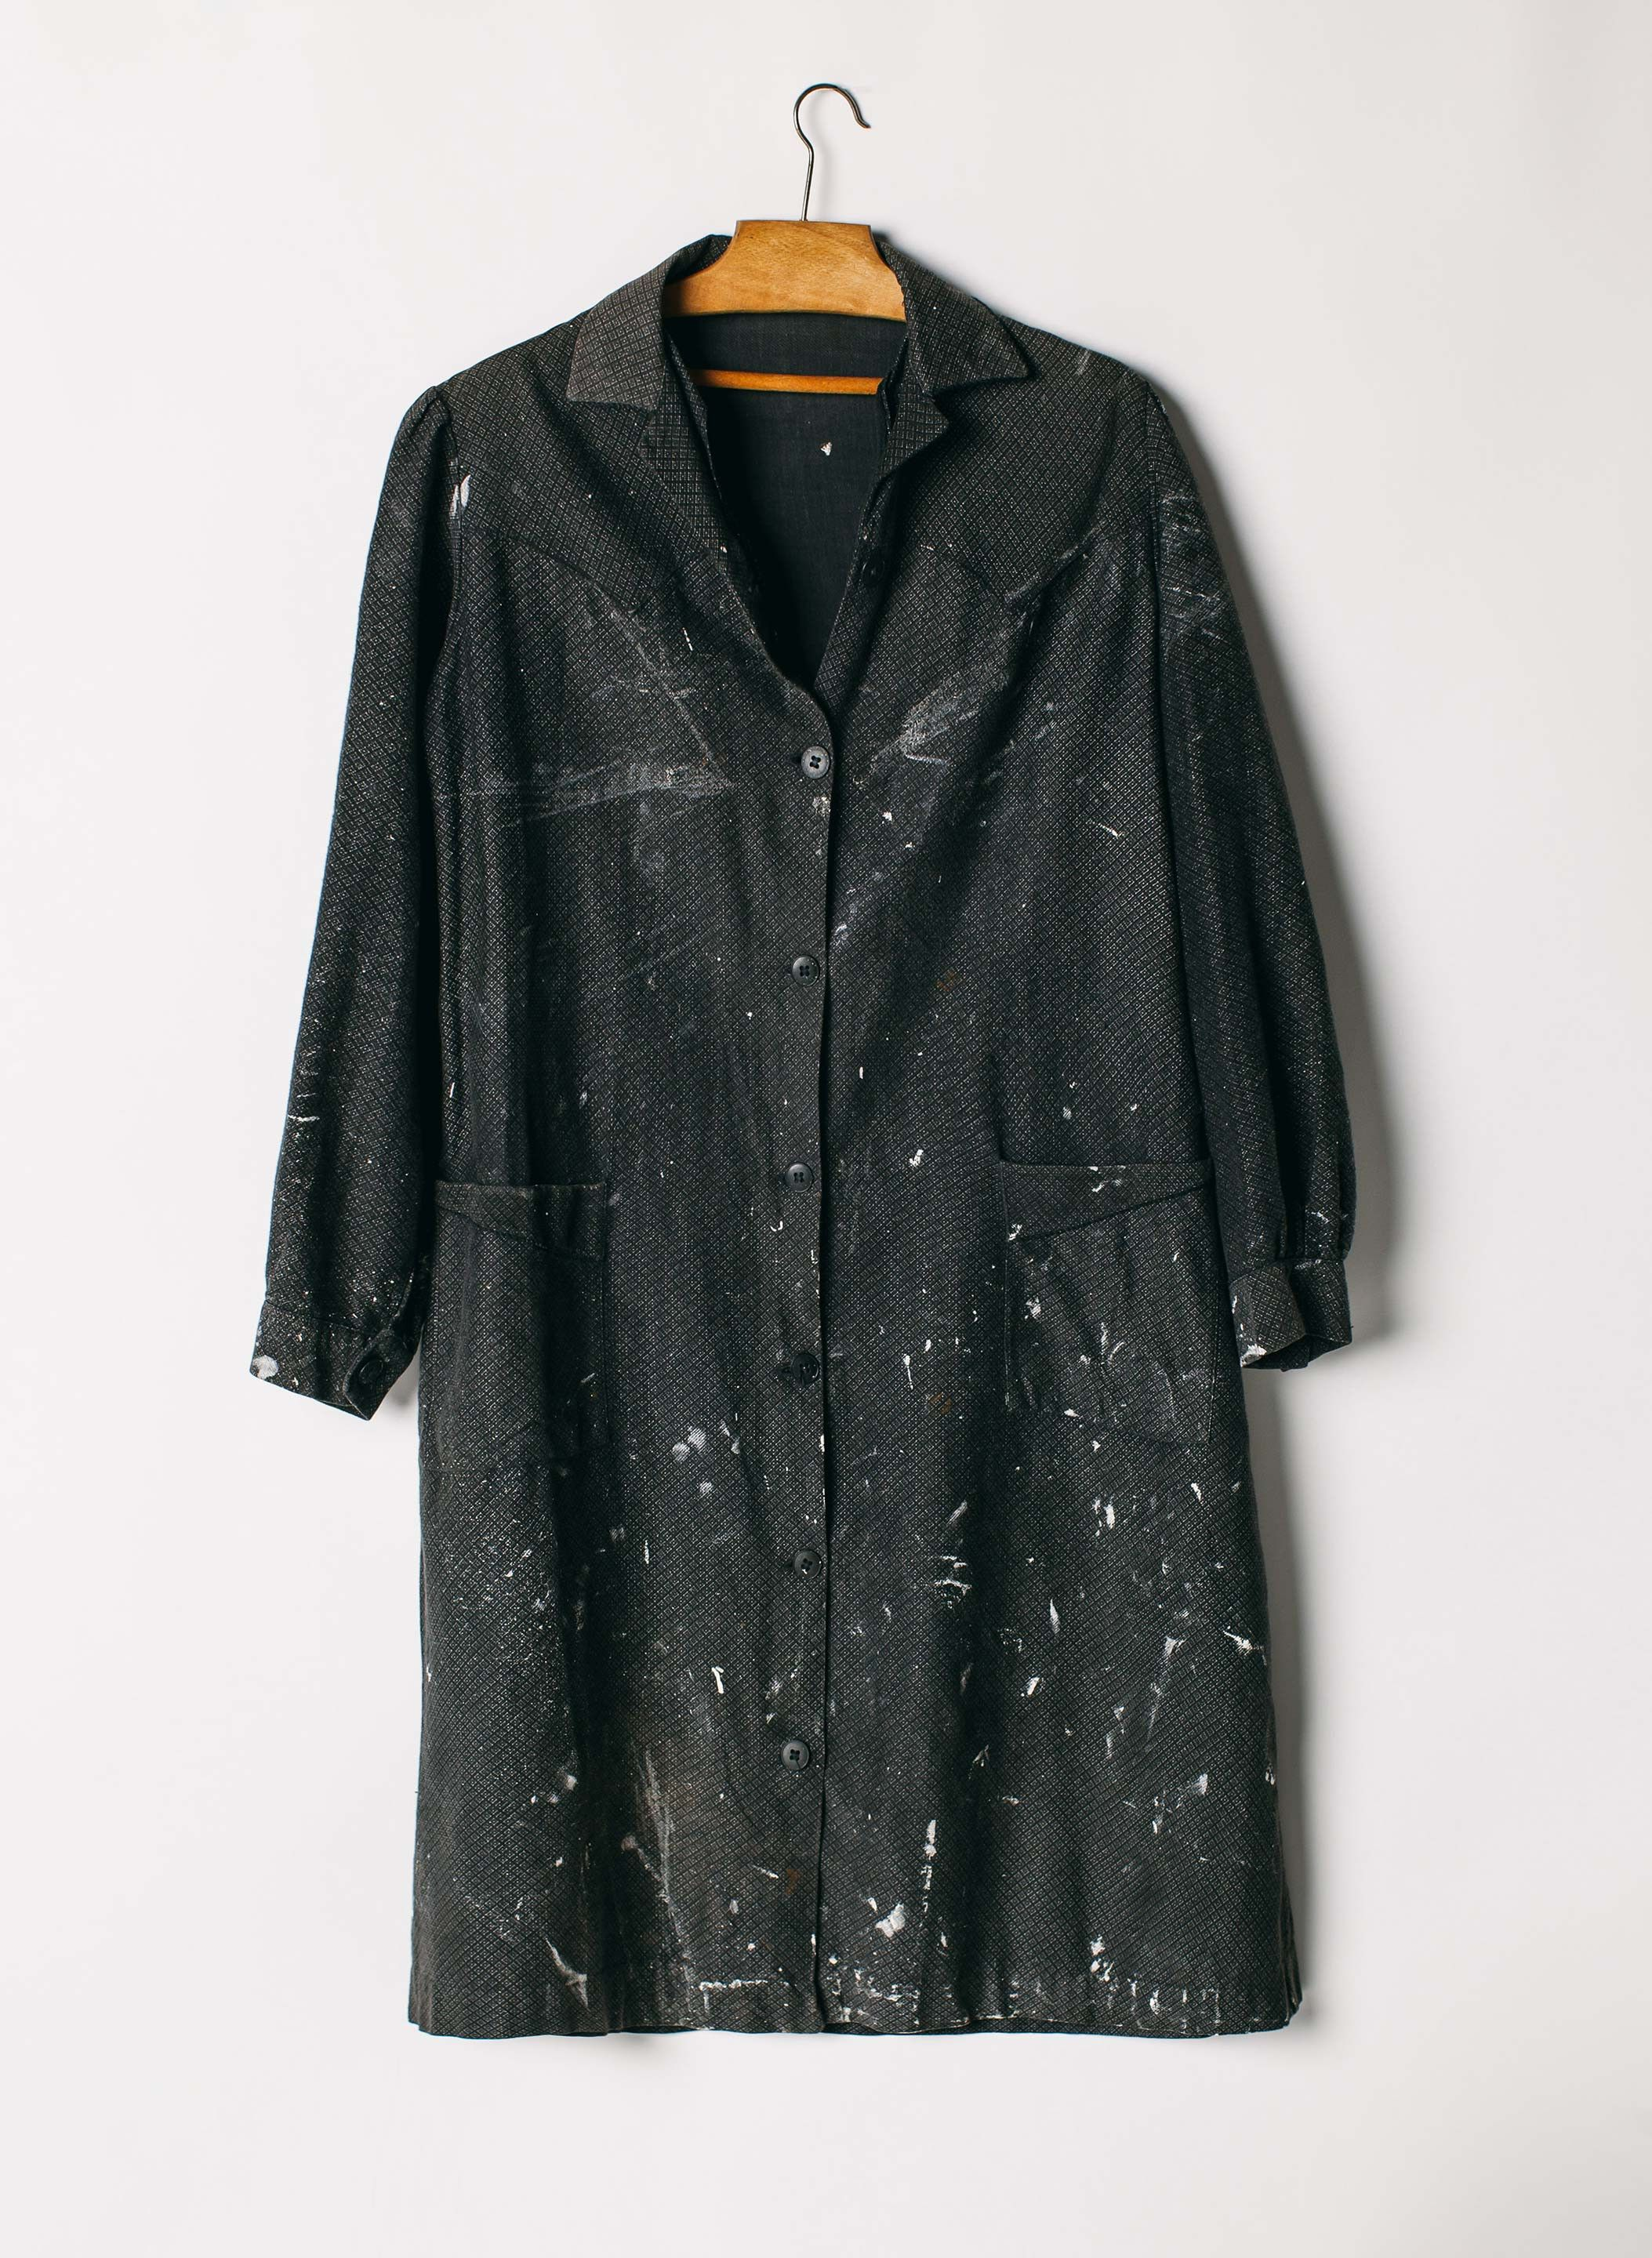 a vintage, paint splattered 1960's painters smock. a relic of the past -  sun faded and beautifully worn with time.